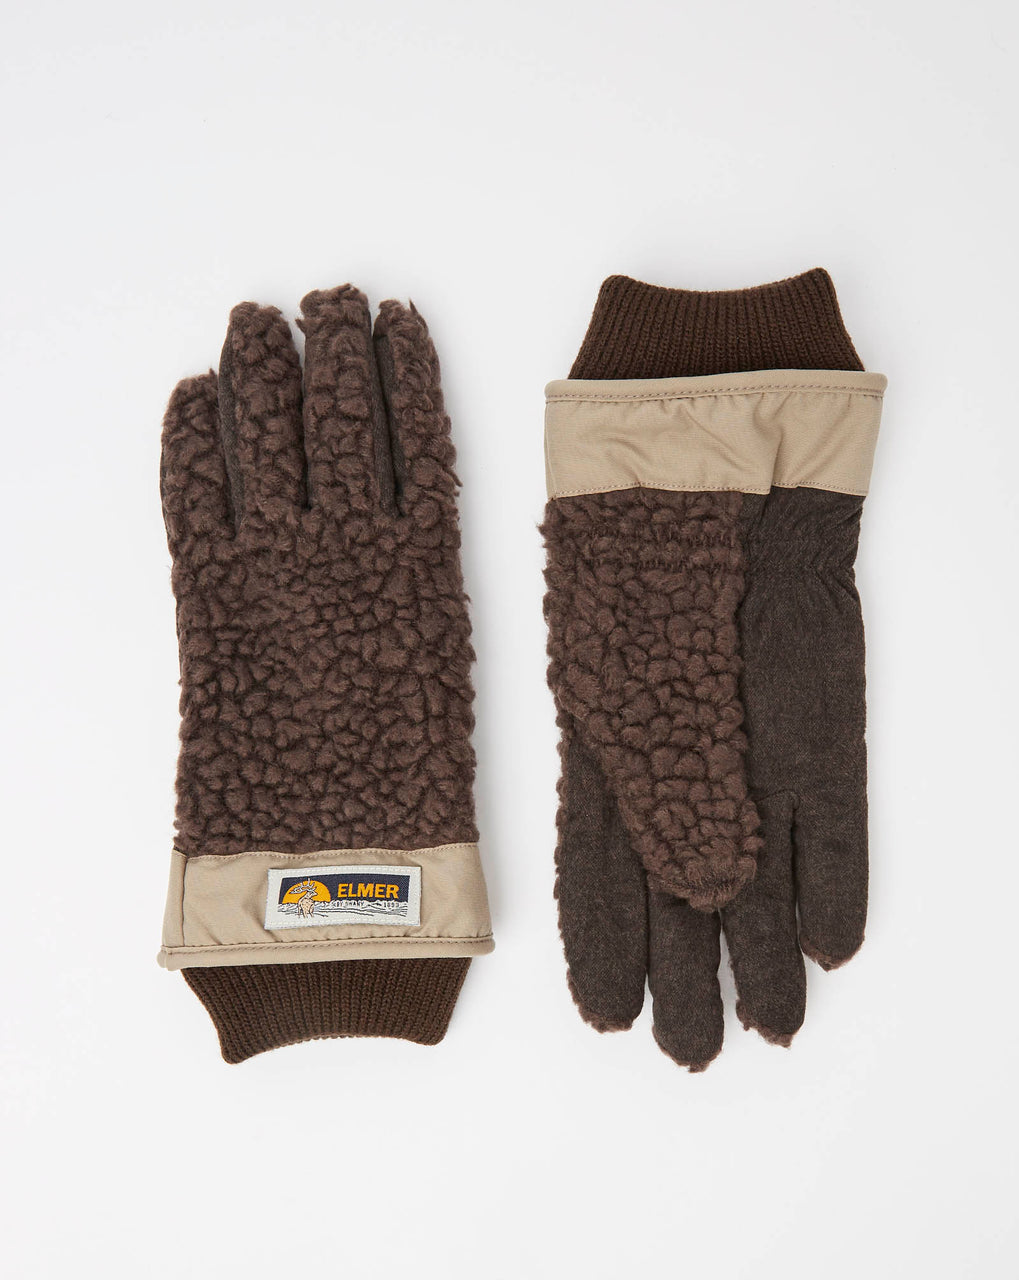 Elmer EM350 Wool Pile Fleece Glove (Brown)